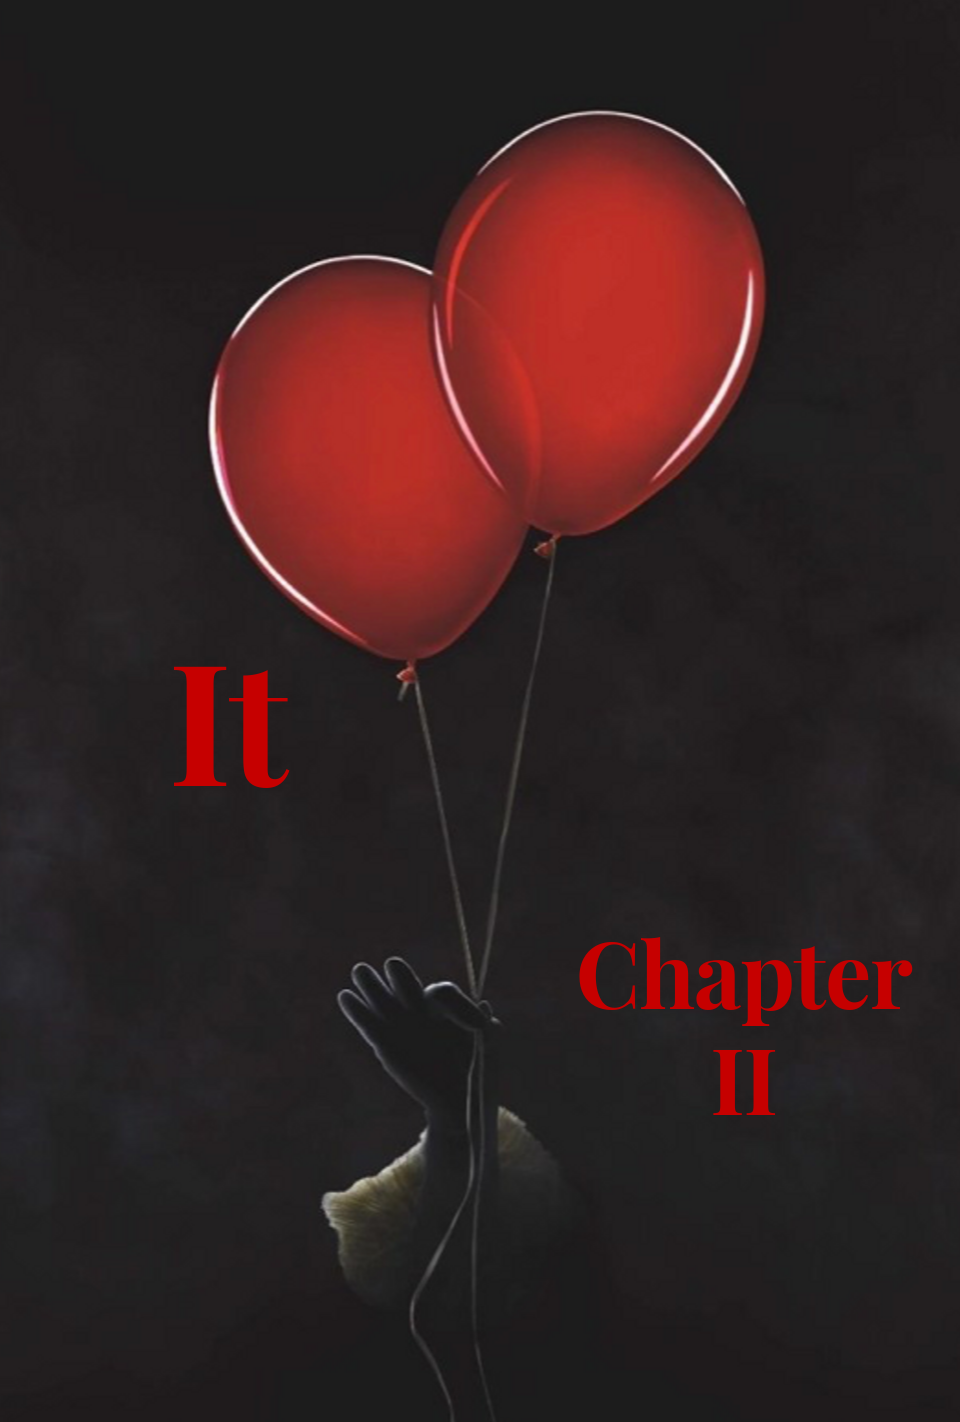 It Chapter Two is the sequel to the original It film. This movie is exciting, memorable and worth the watch.